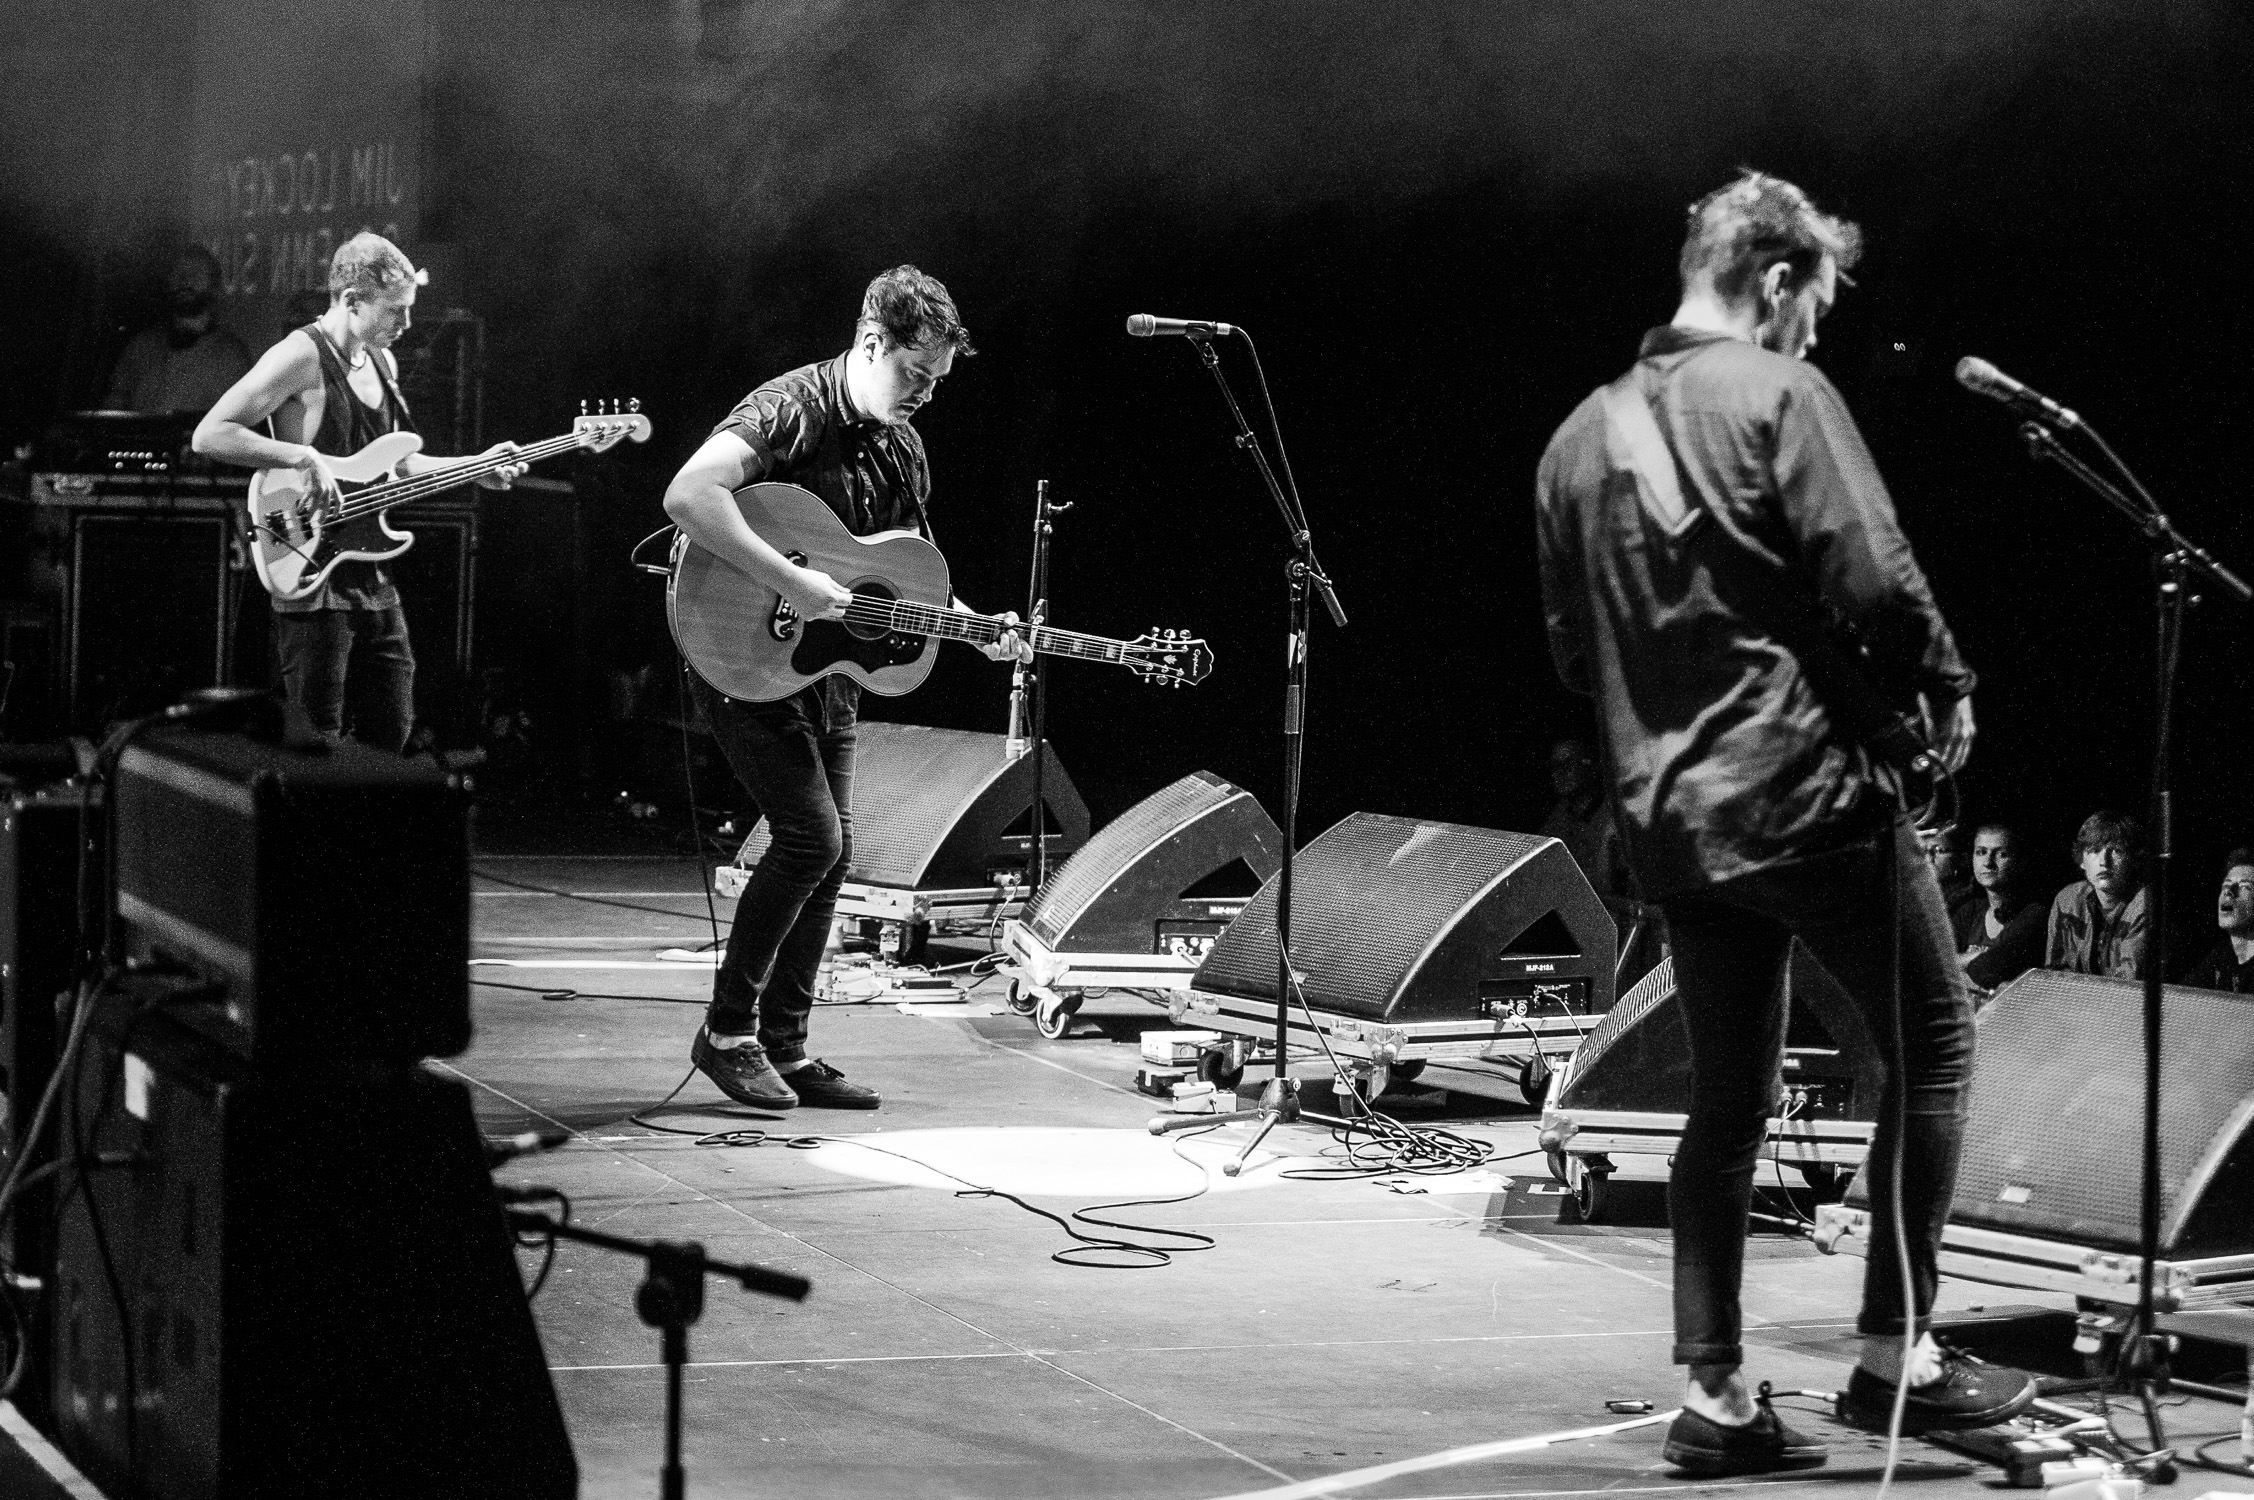 Jim Lockey & The Solemn Sun Derry 28.09.13-164.jpg